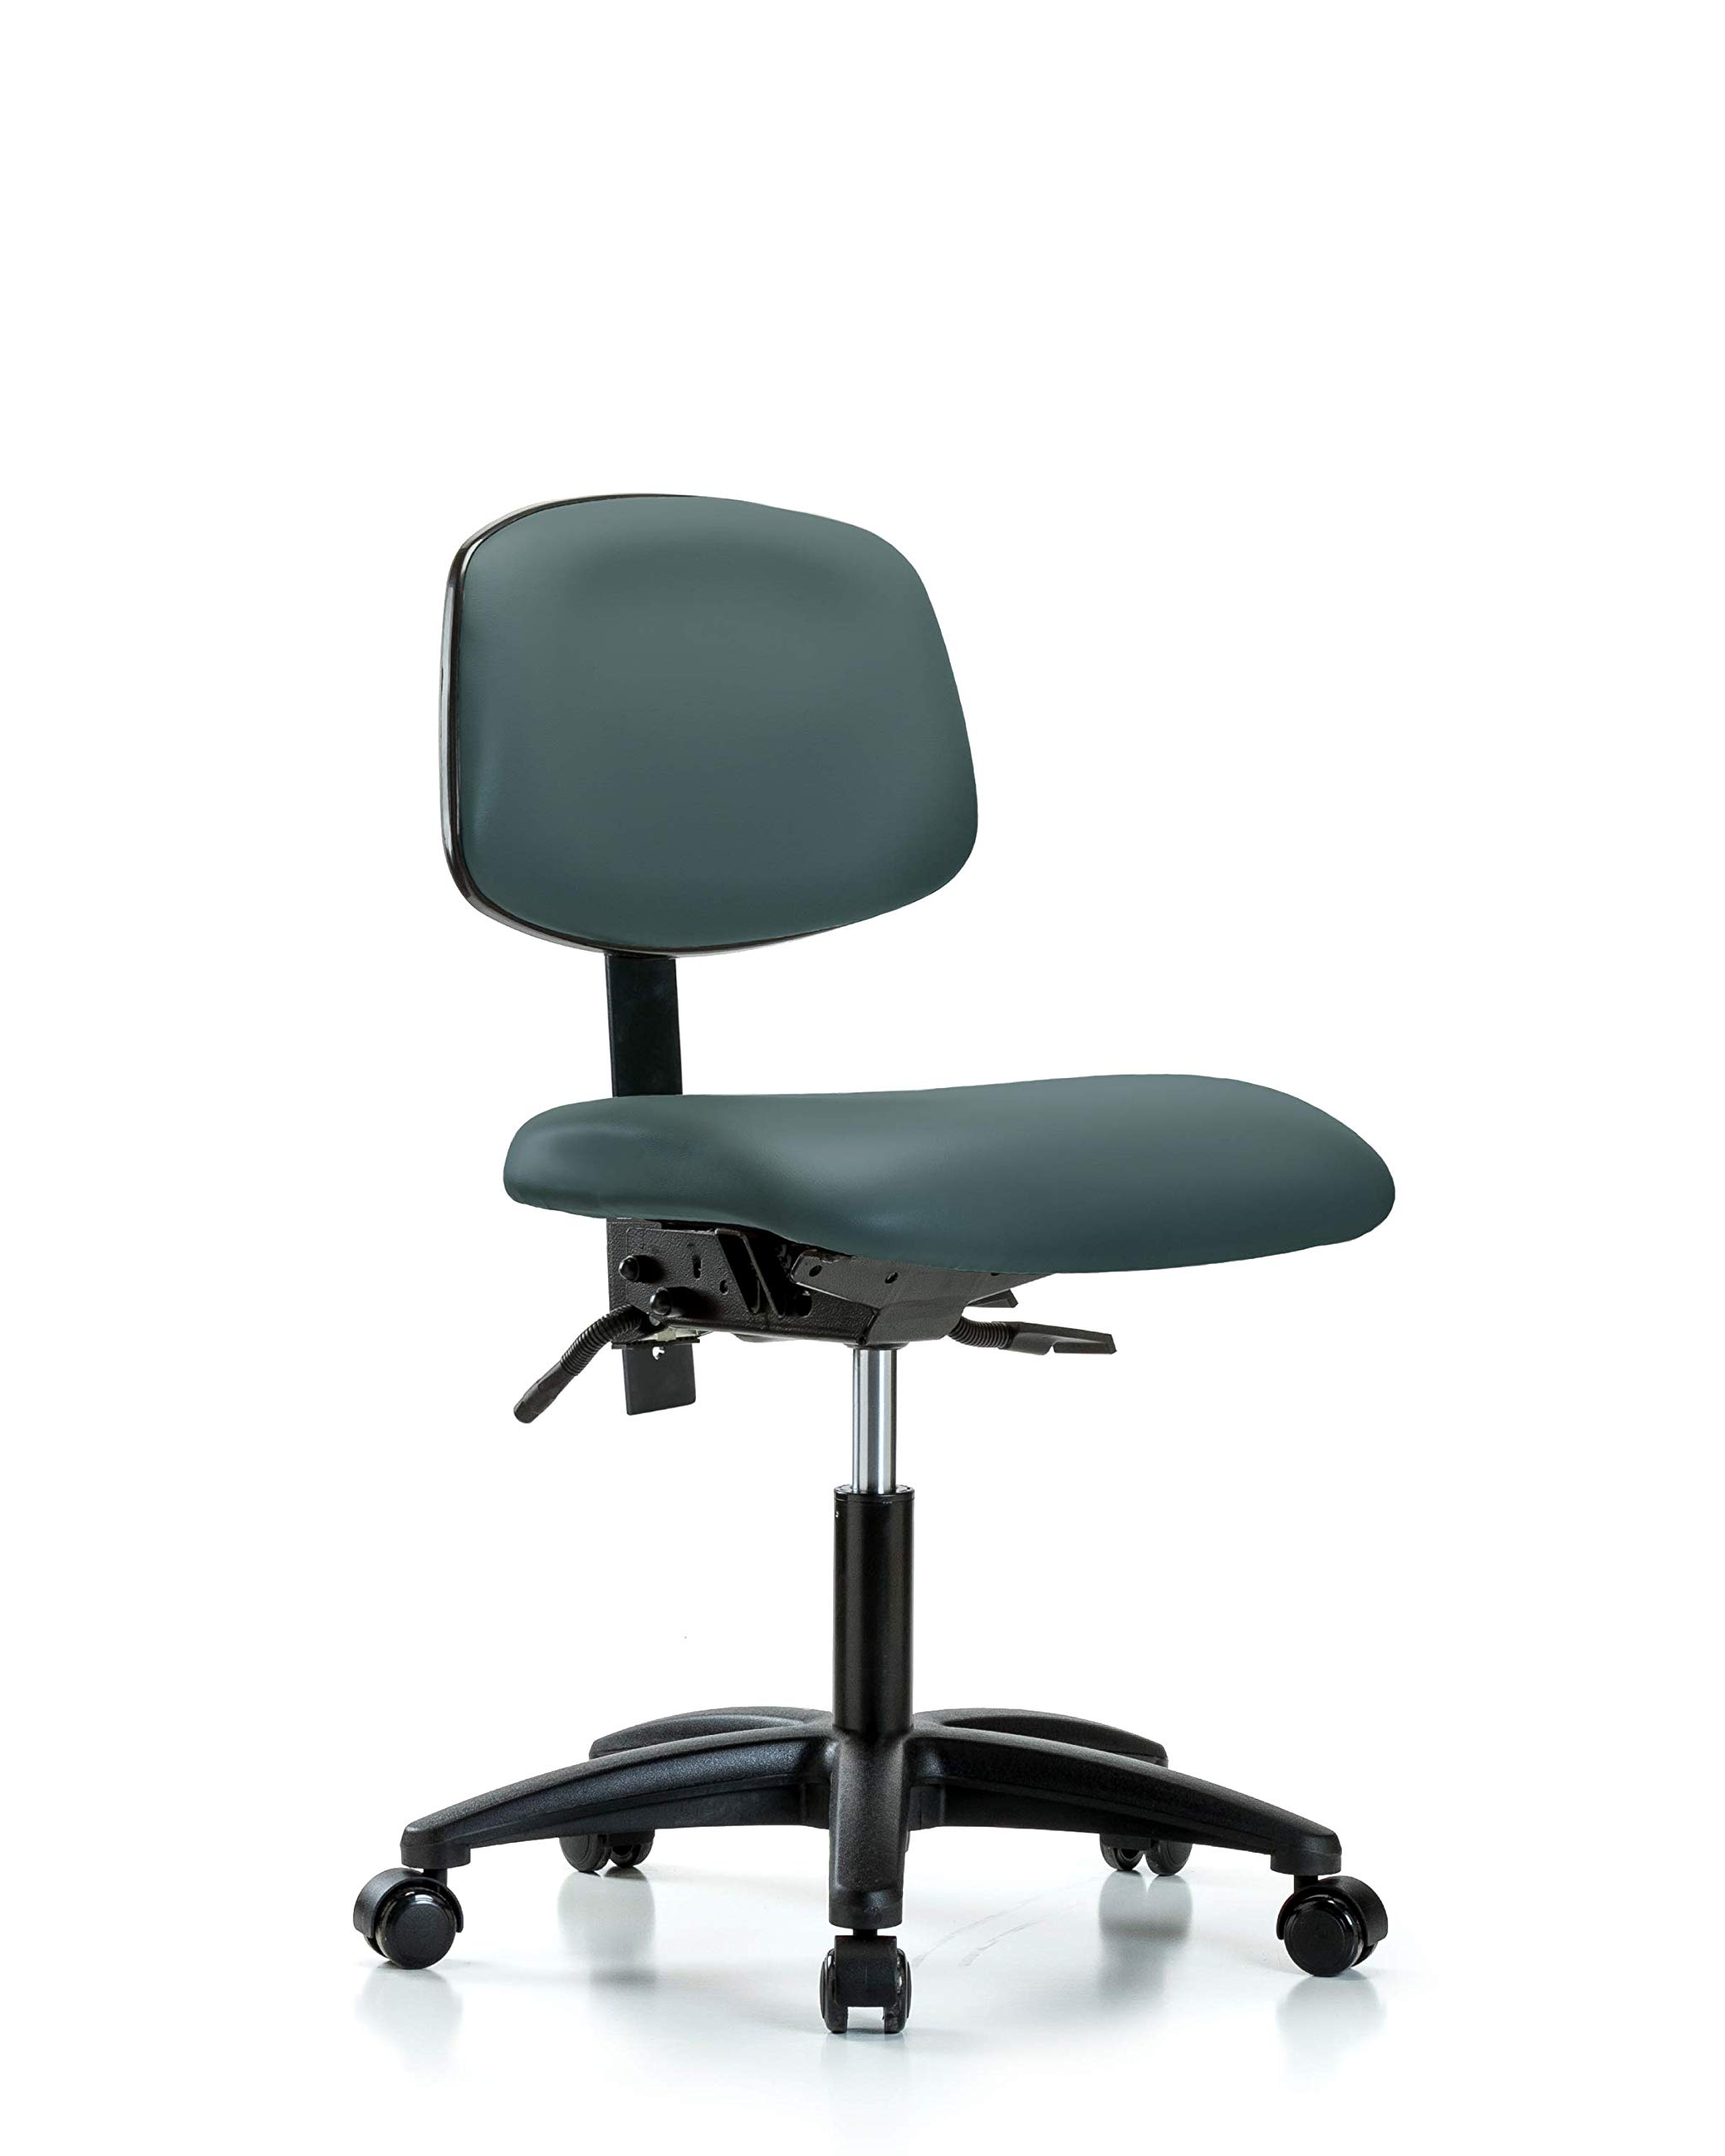 LabTech Seating LT44207 Desk Height Chair, Vinyl, Nylon Base - Casters, Colonial Blue